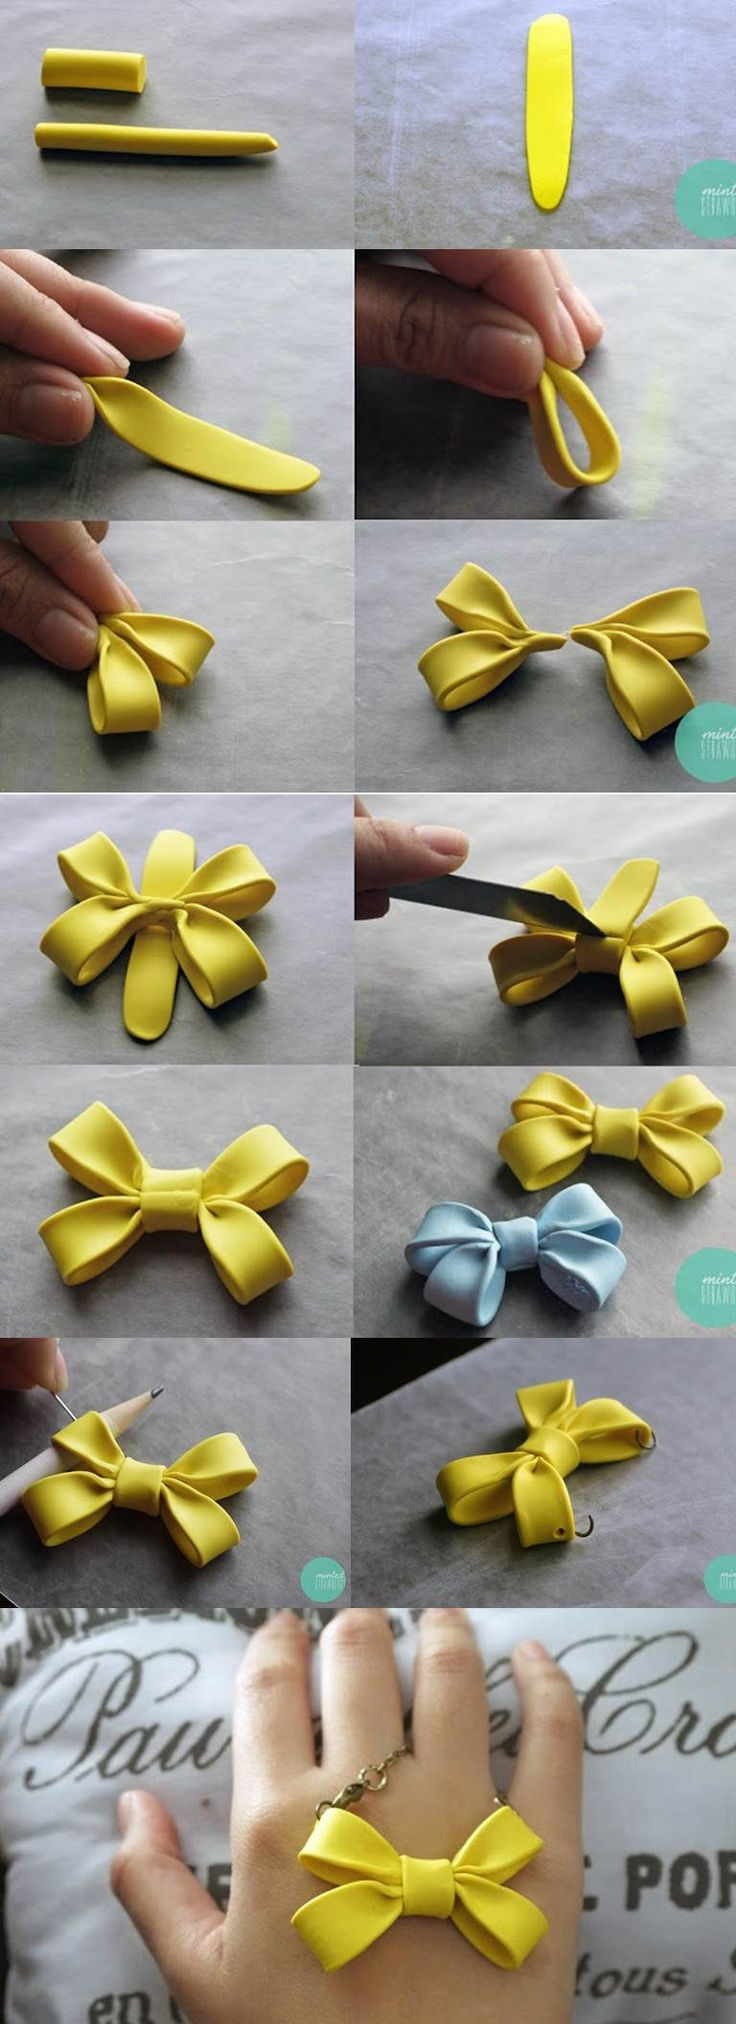 Double Bow Necklace Tutorial  What do you need?  Polymer clay  Cutter  Jump rings  Jewelry pliers  Clasp  Chain  Oven  Pencil   Pin